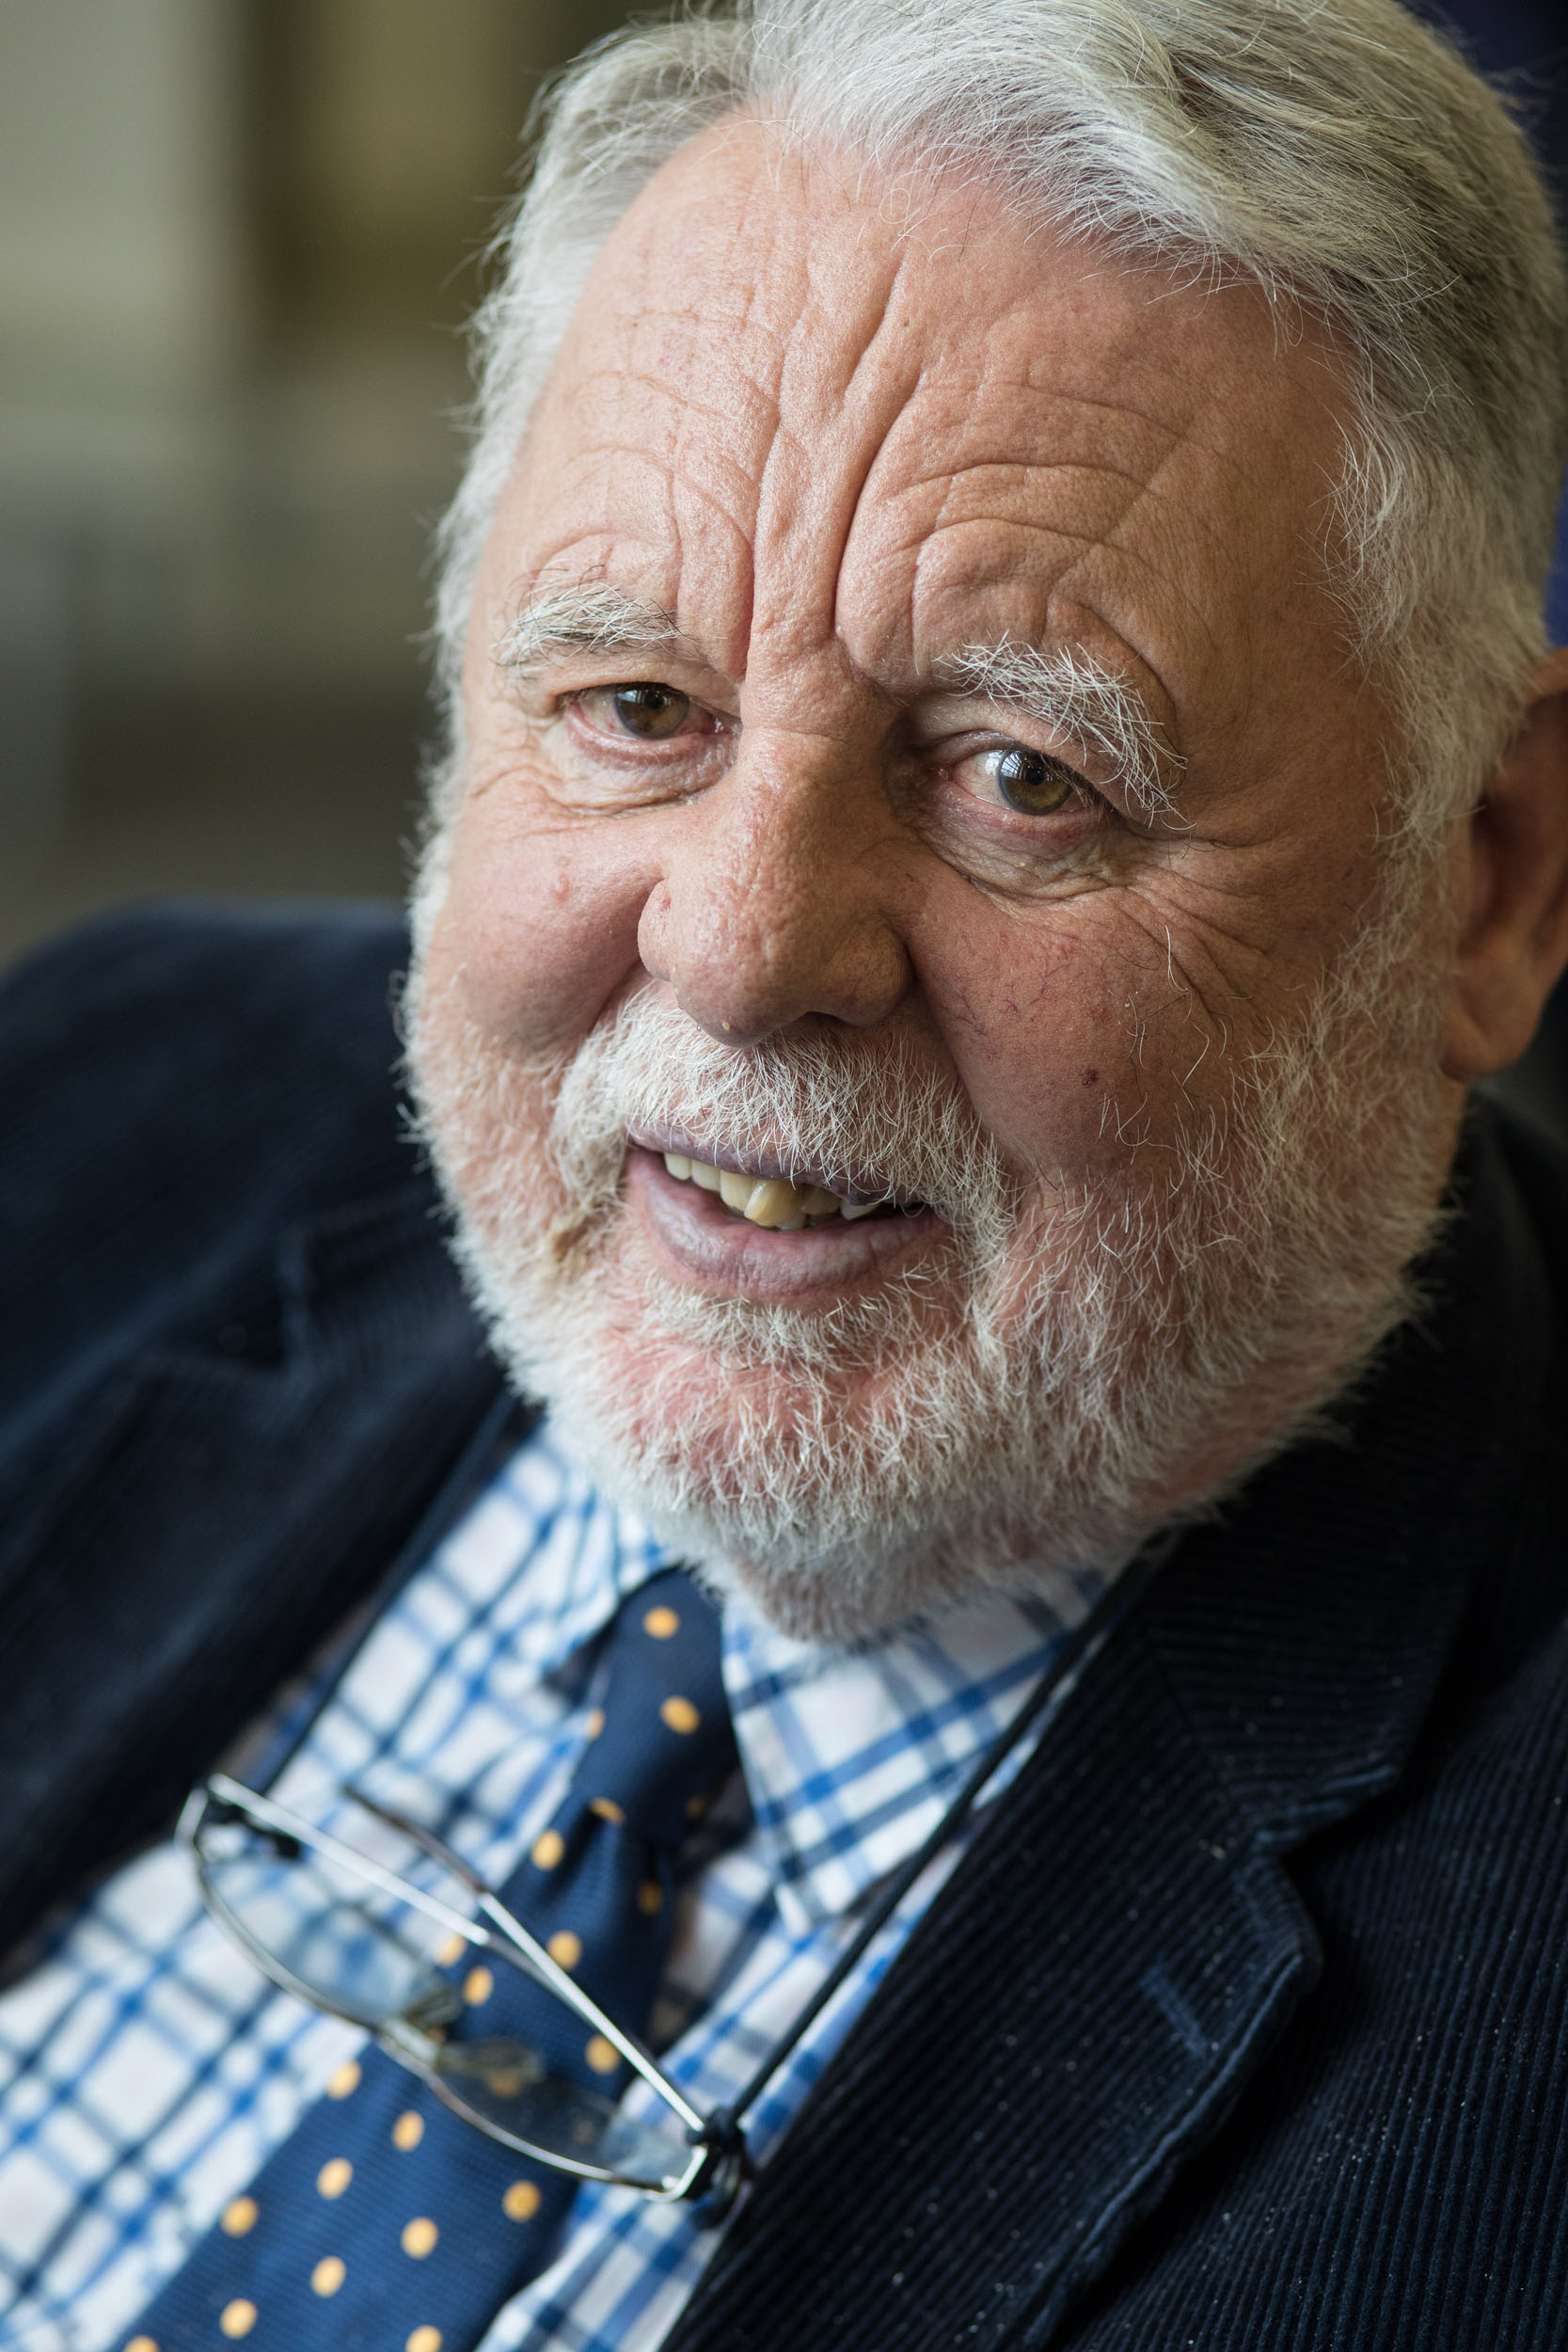 This is a portrait photograph of Terry Waite, UK hostage negotiator to the Middle East